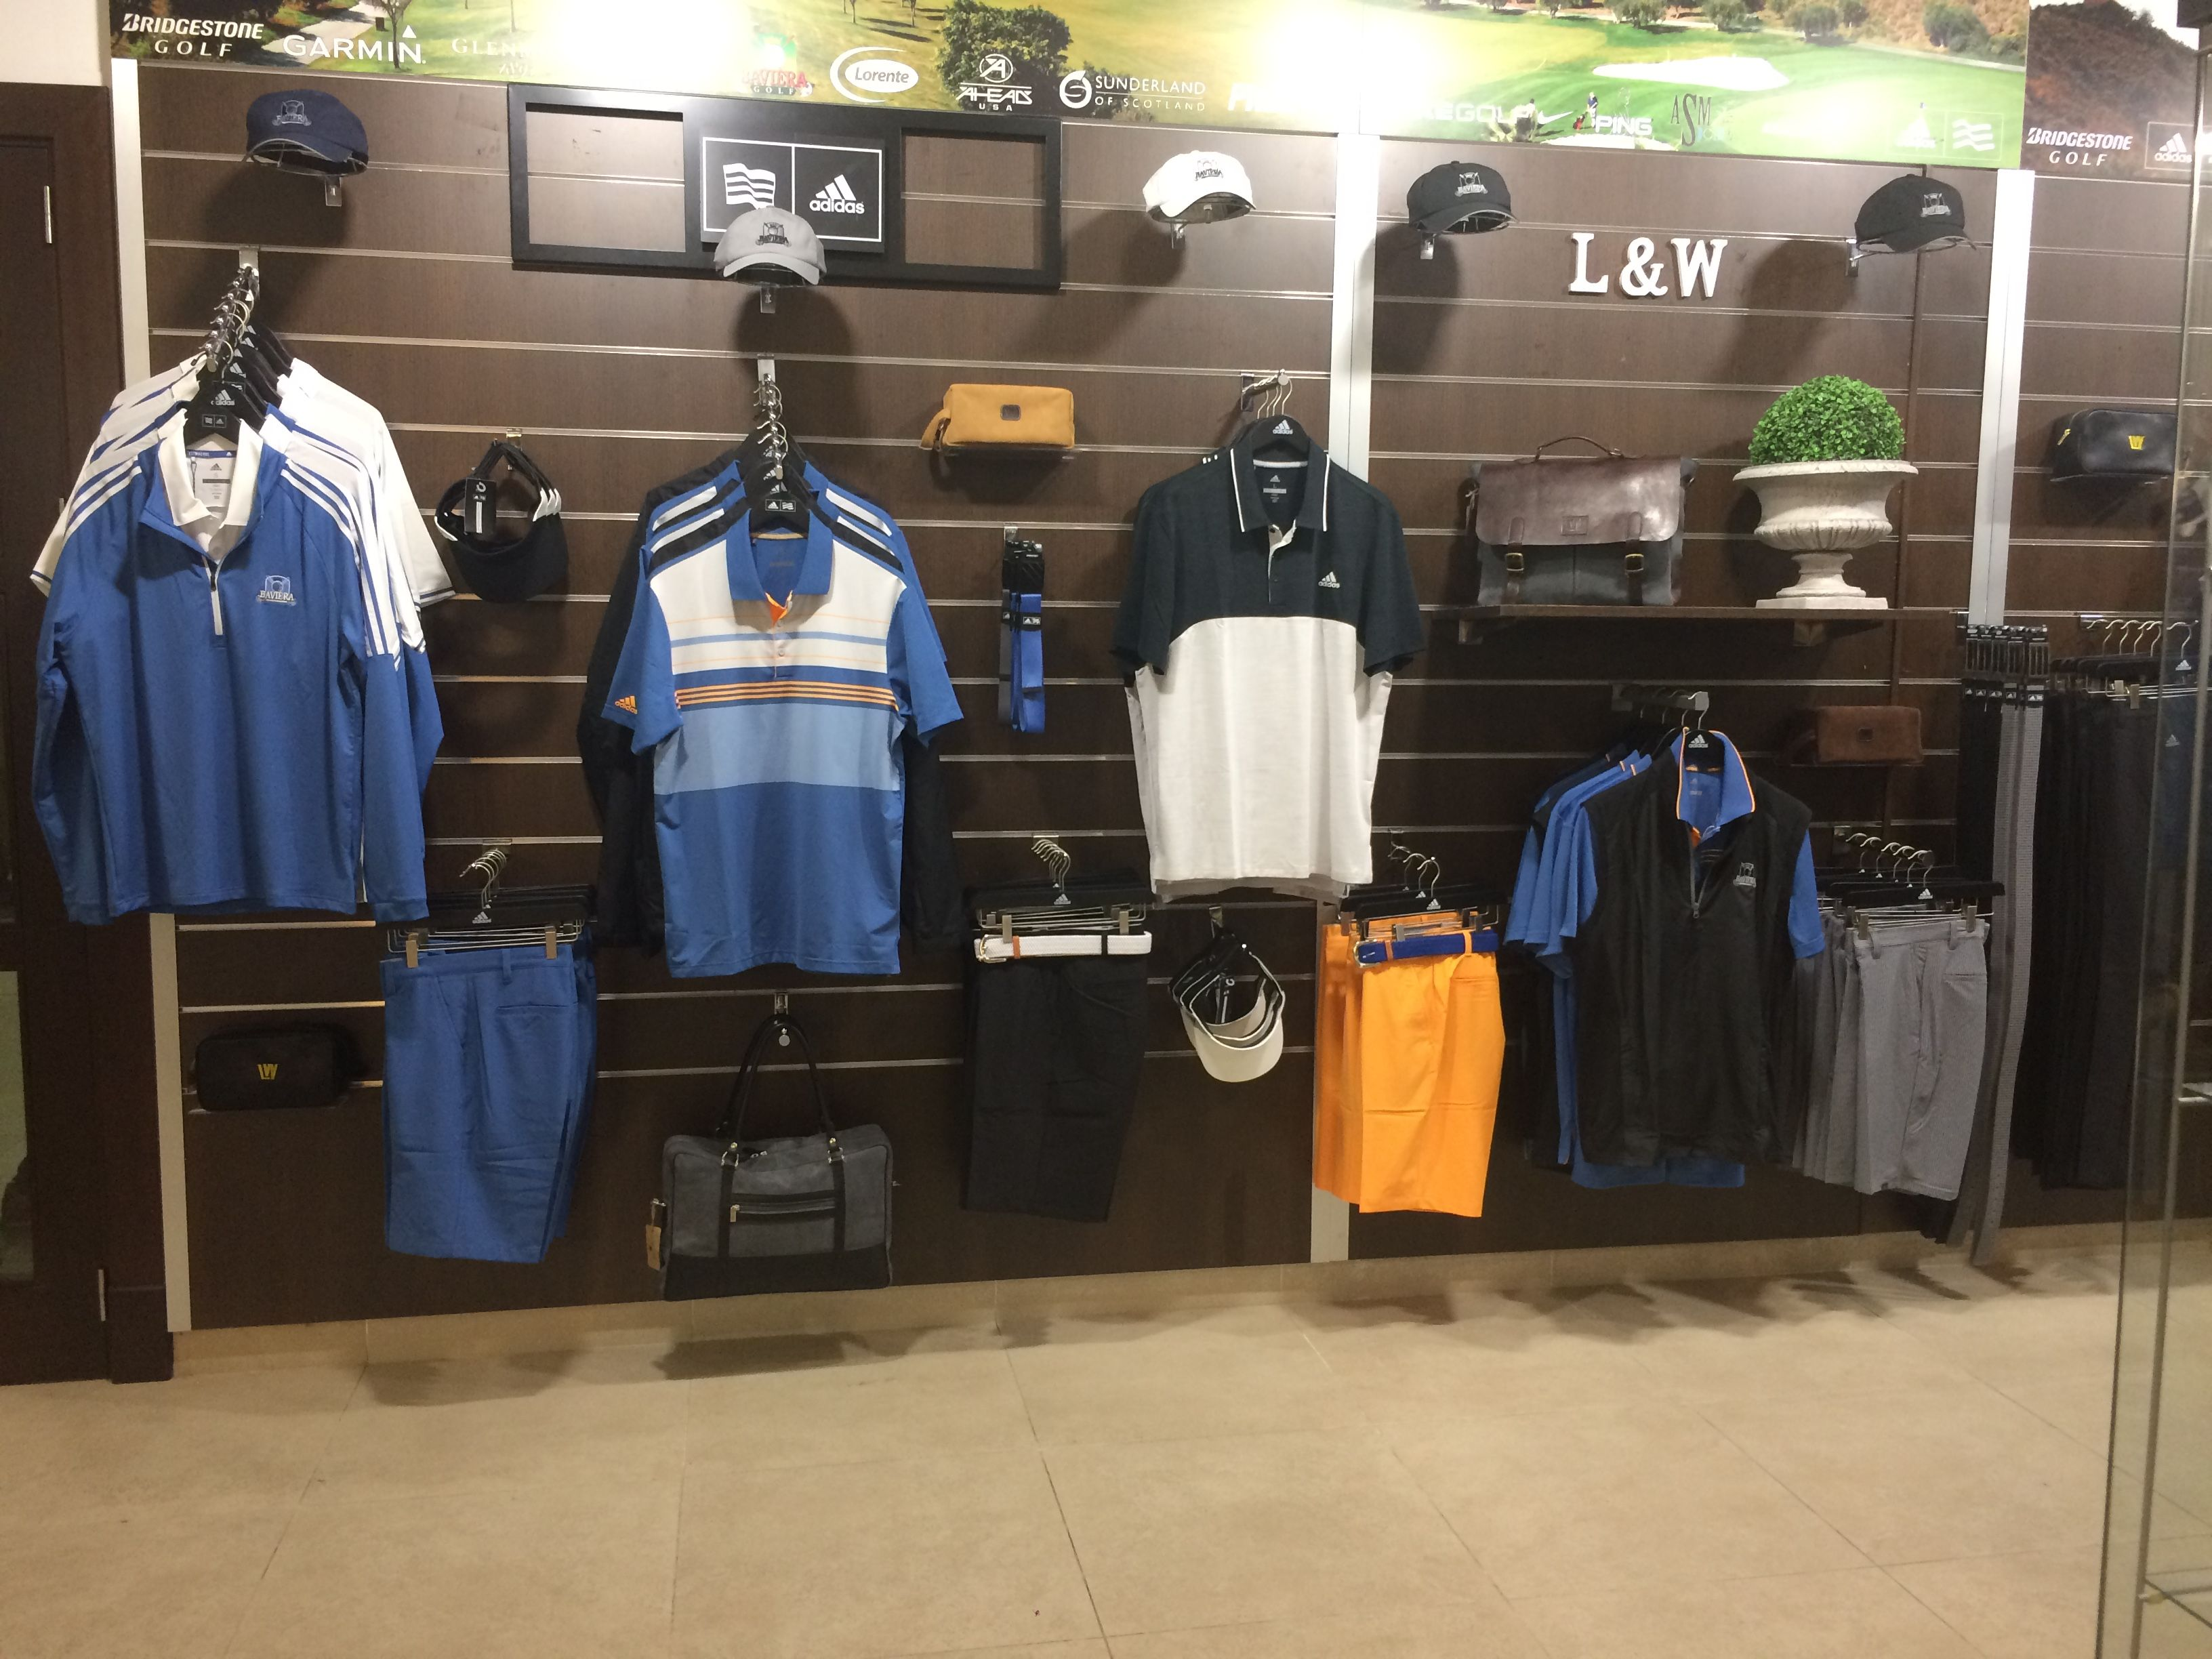 Adidas Golf Display La Casa Del Golf Casas